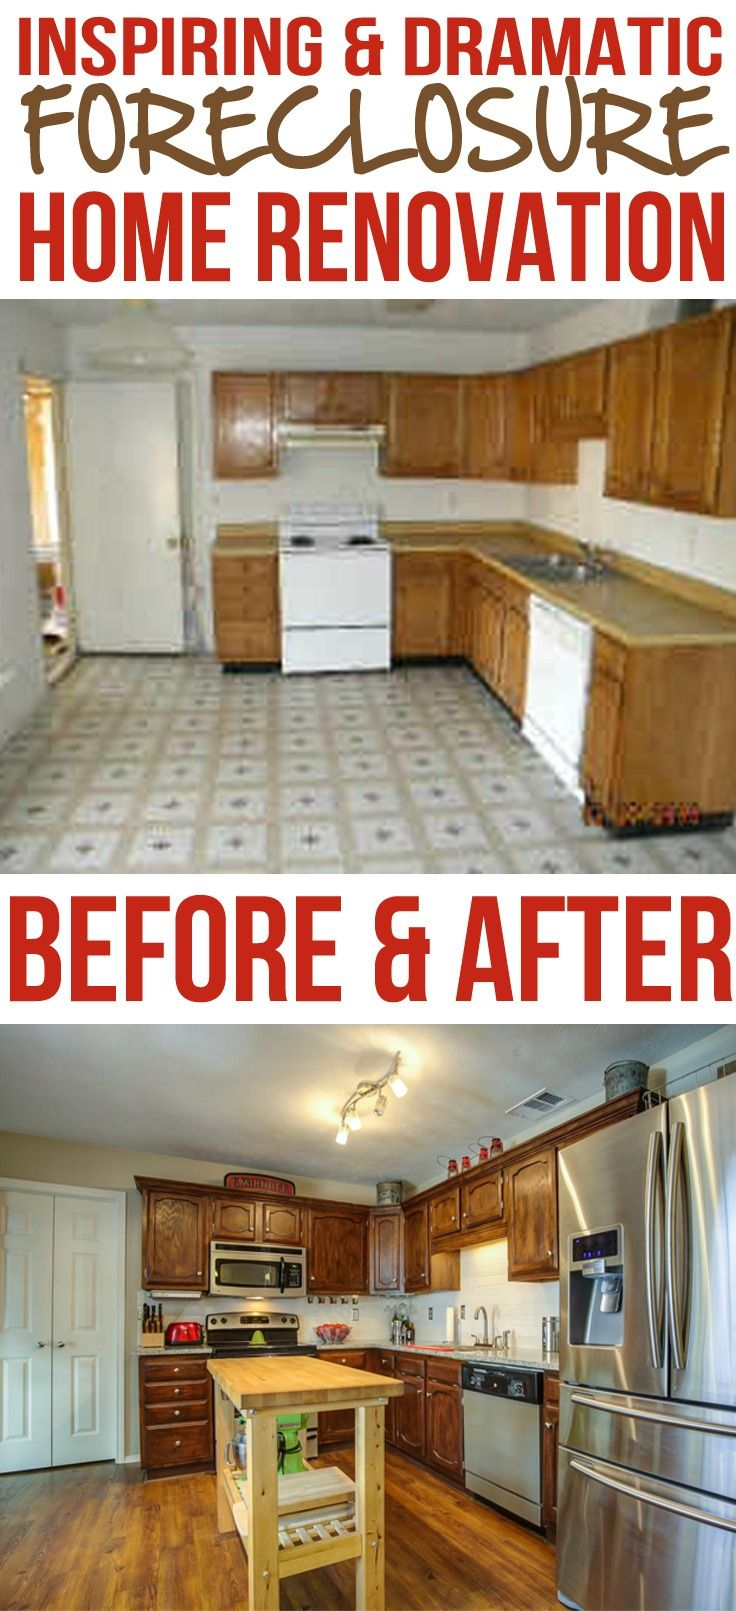 Before And After Images Of An Amazing Foreclosure Home Renovation In Texas